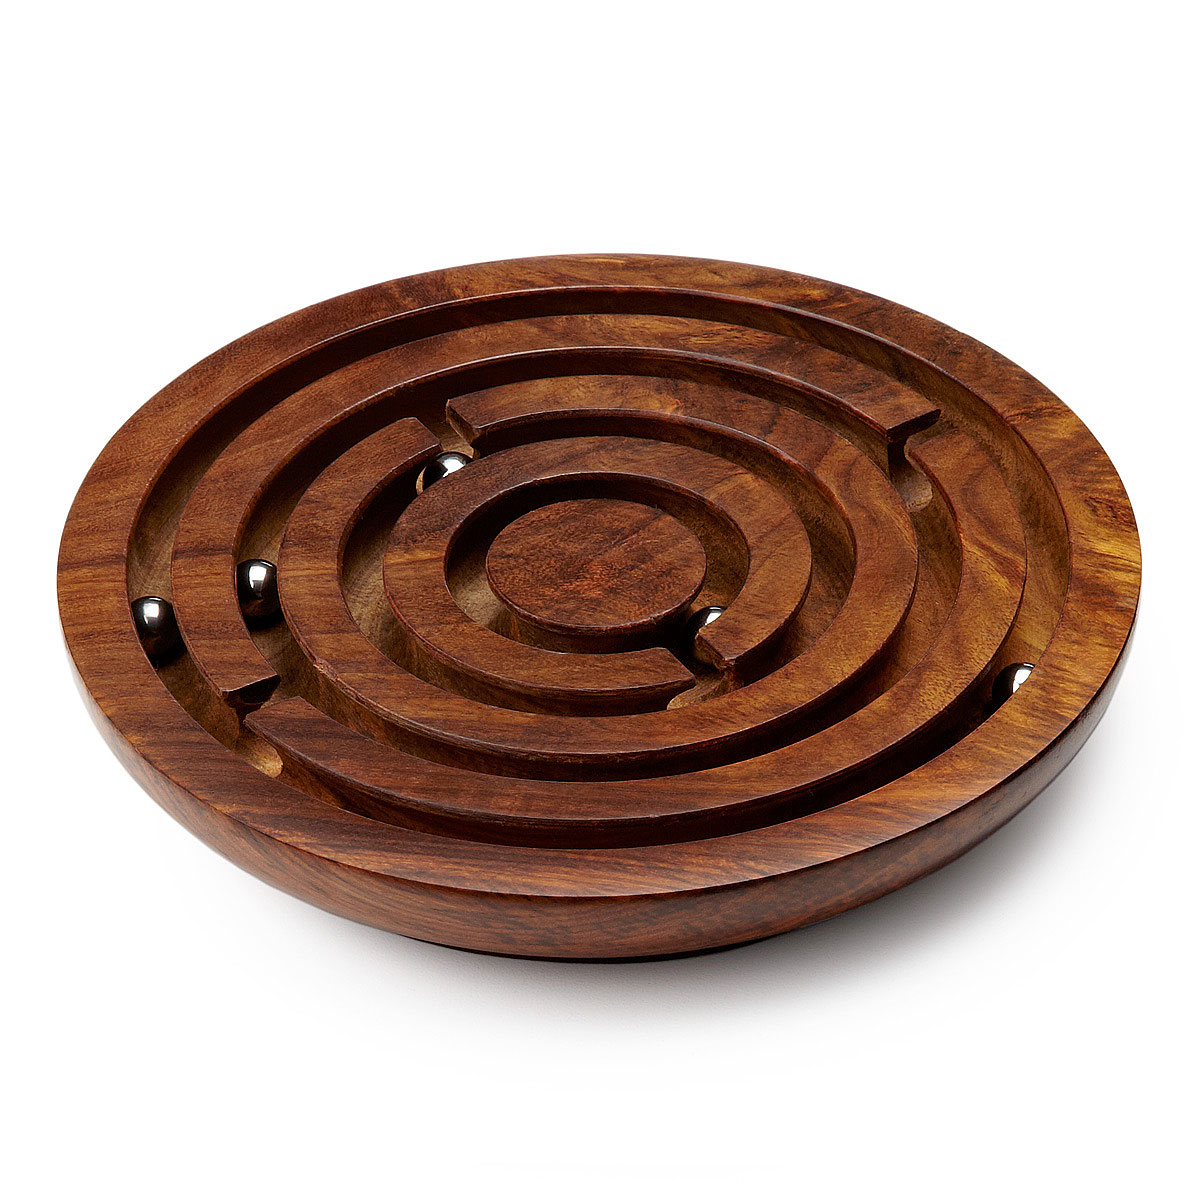 Wooden Labyrinth Game Maze, Labyrinth game and Marbles